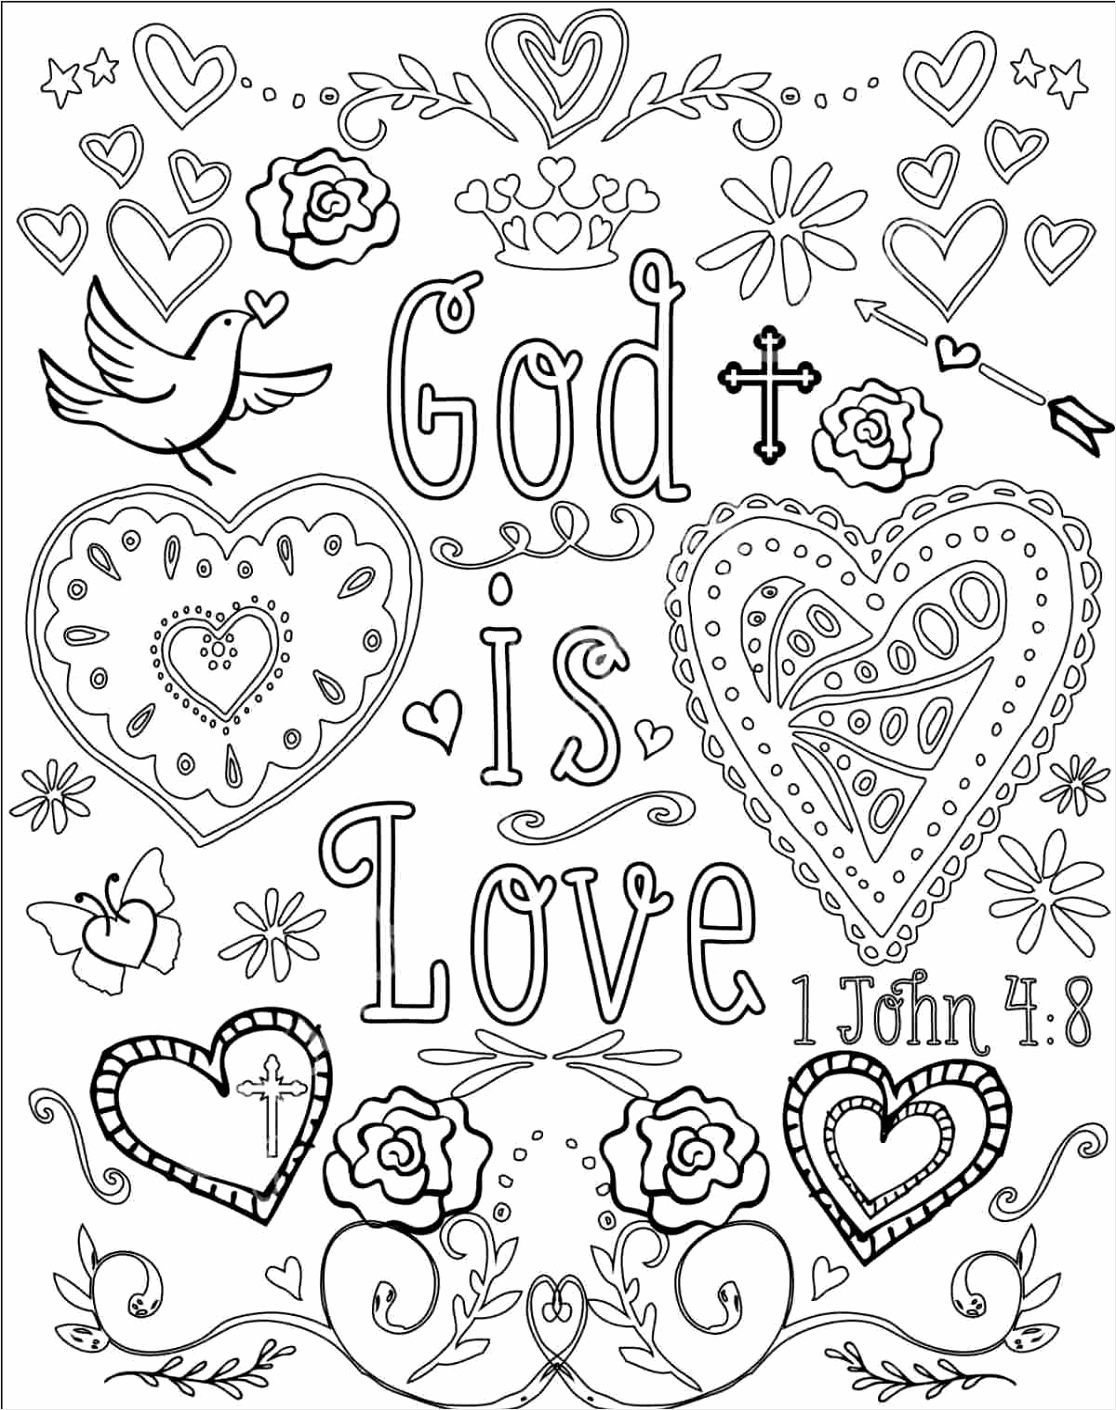 printableing sheet bible verse pages free for children sheets kids feeding the wtuur